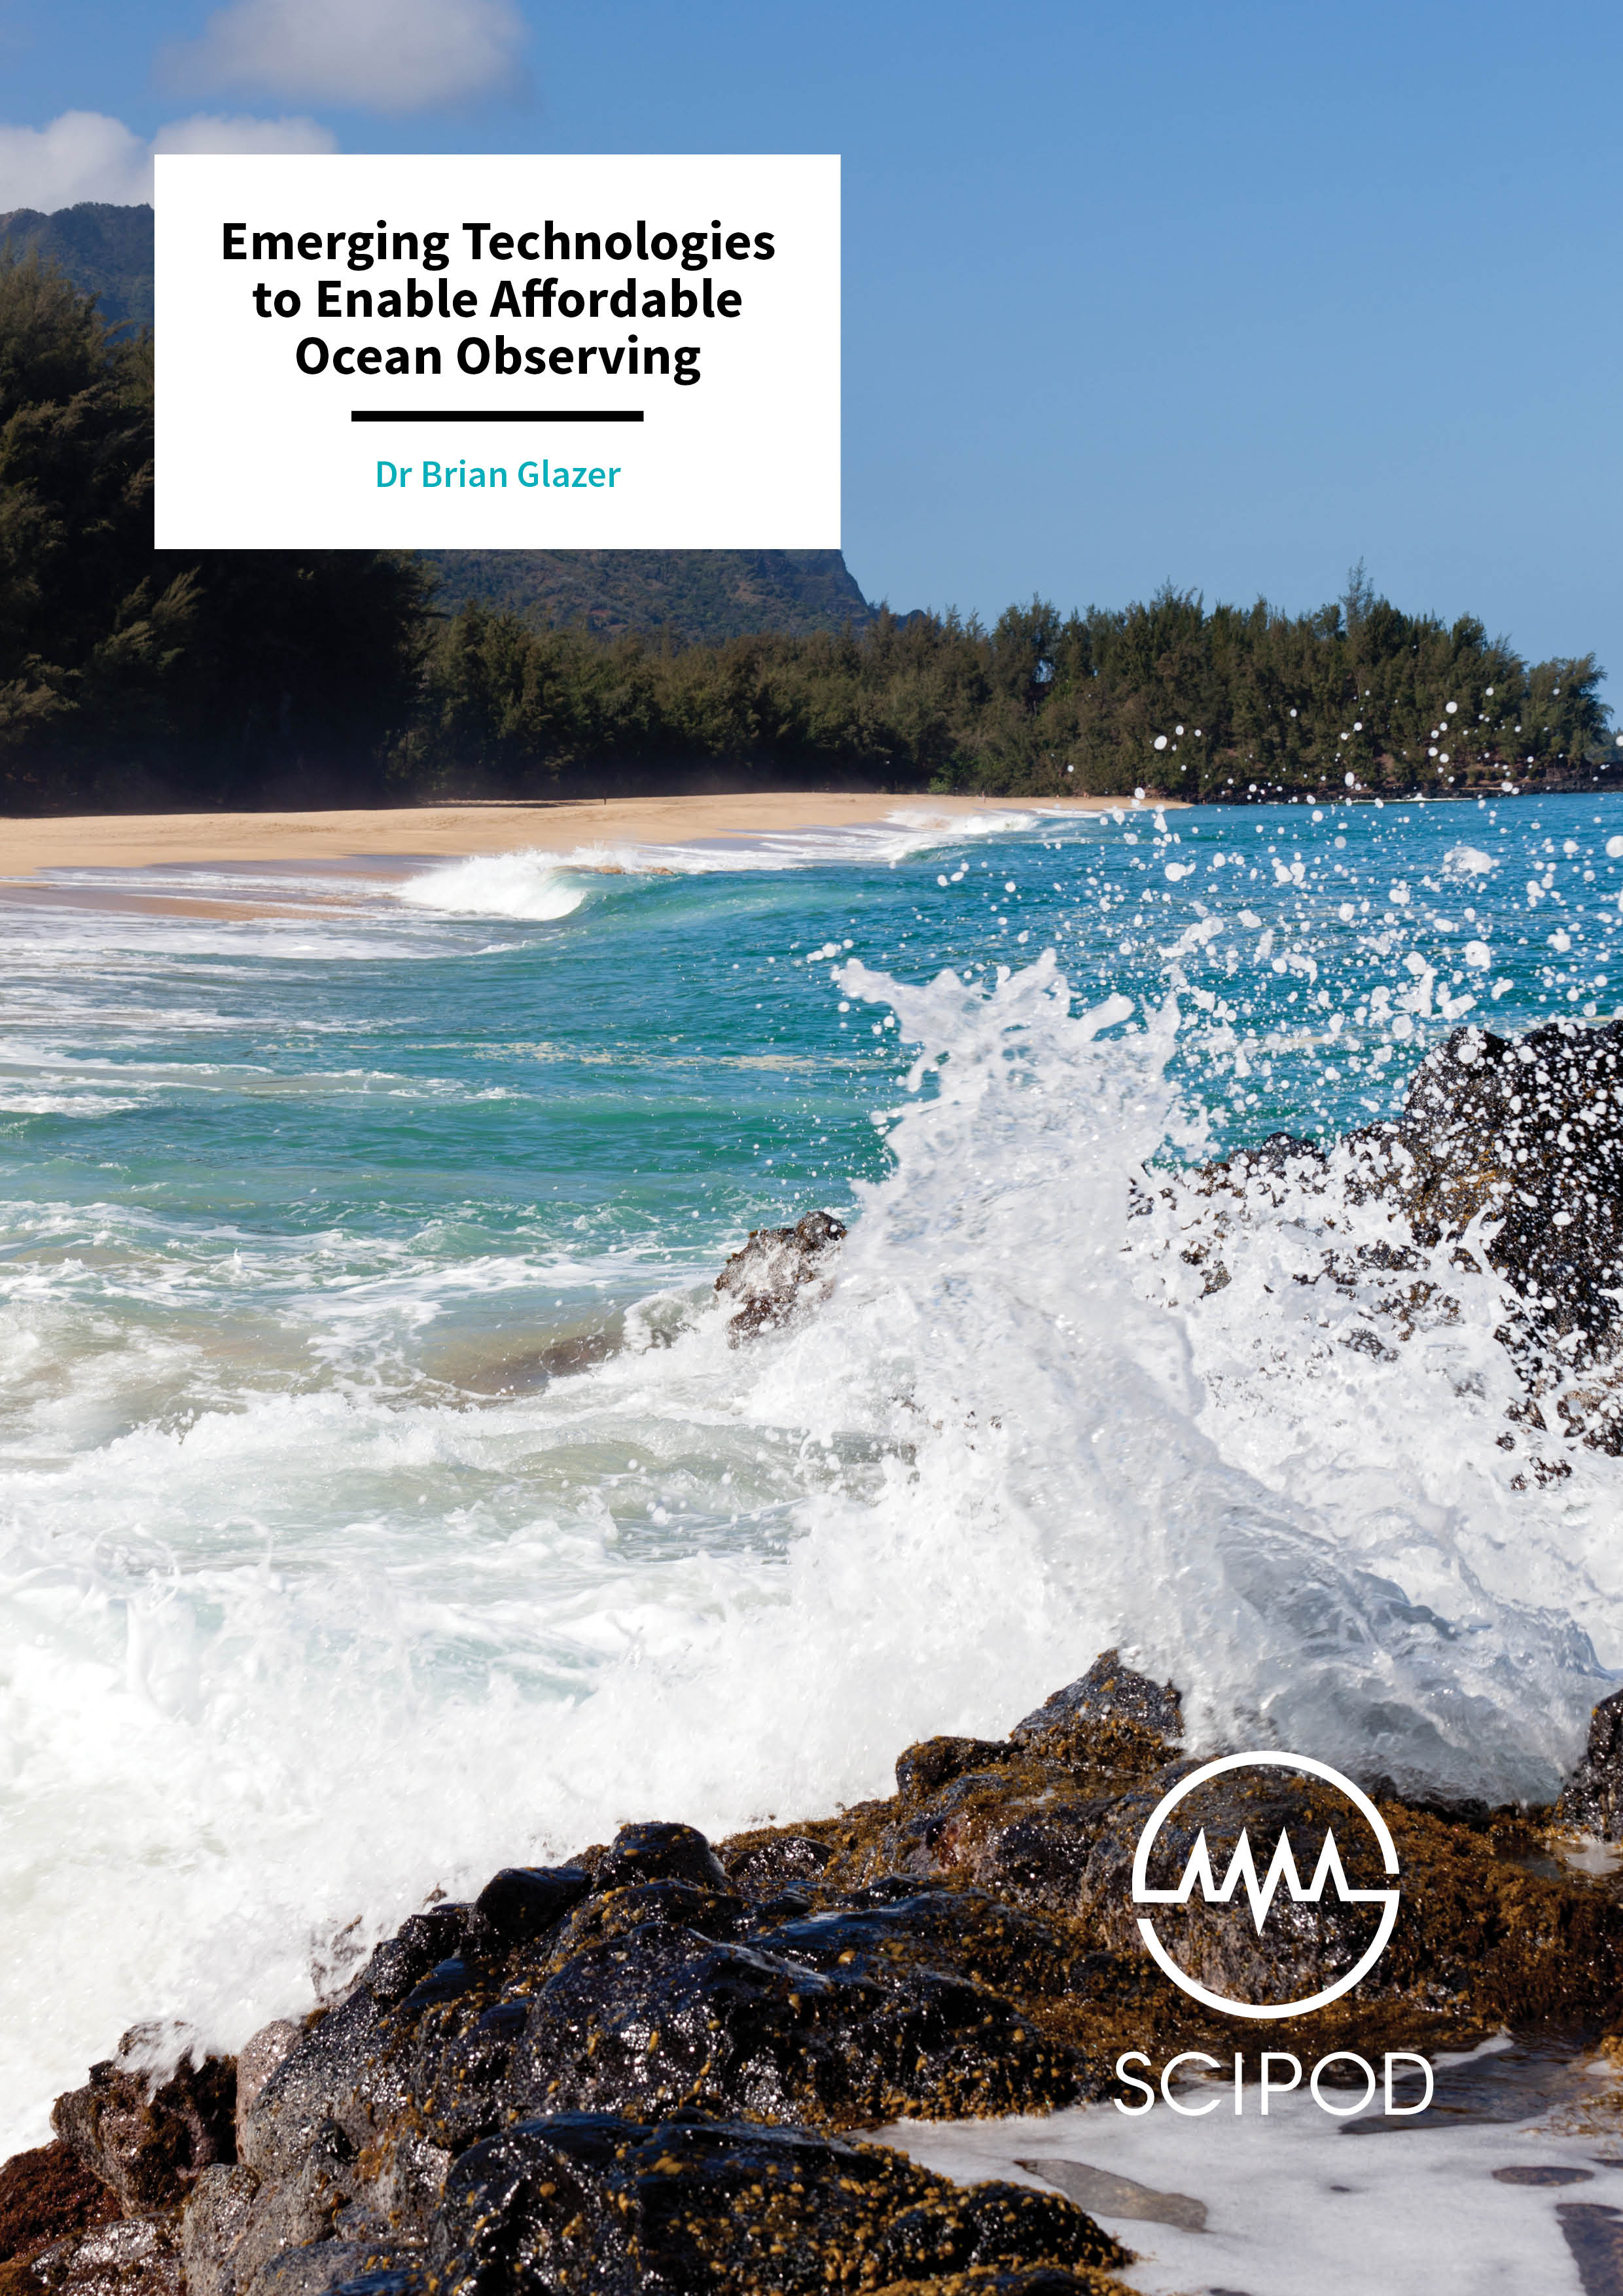 Emerging Technologies to Enable Affordable Ocean Observing – Dr Brian Glazer, University of Hawai'i at Mānoa